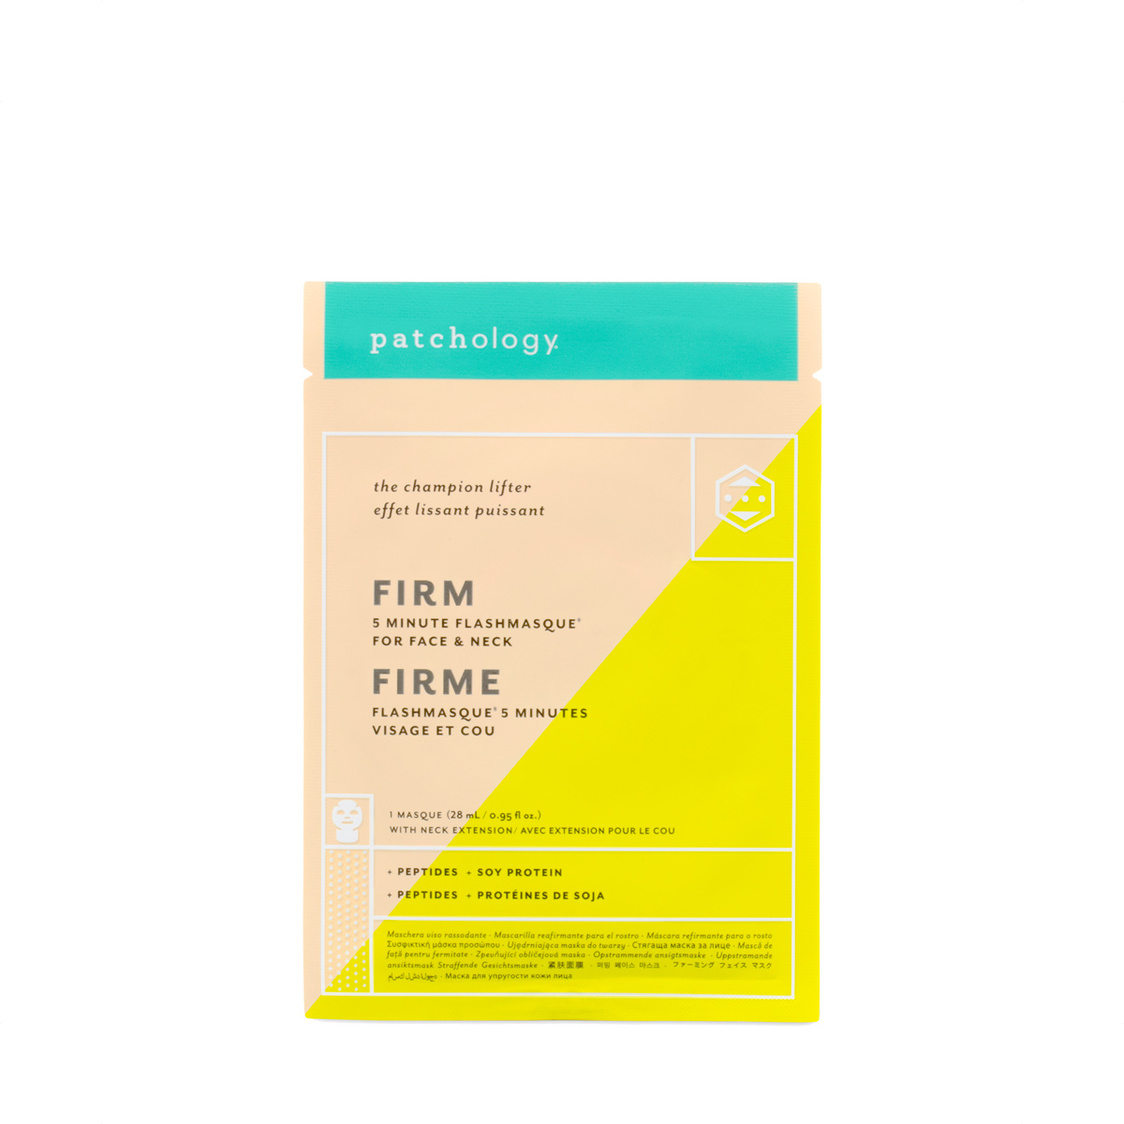 Flashmasque Firm - Single Pack